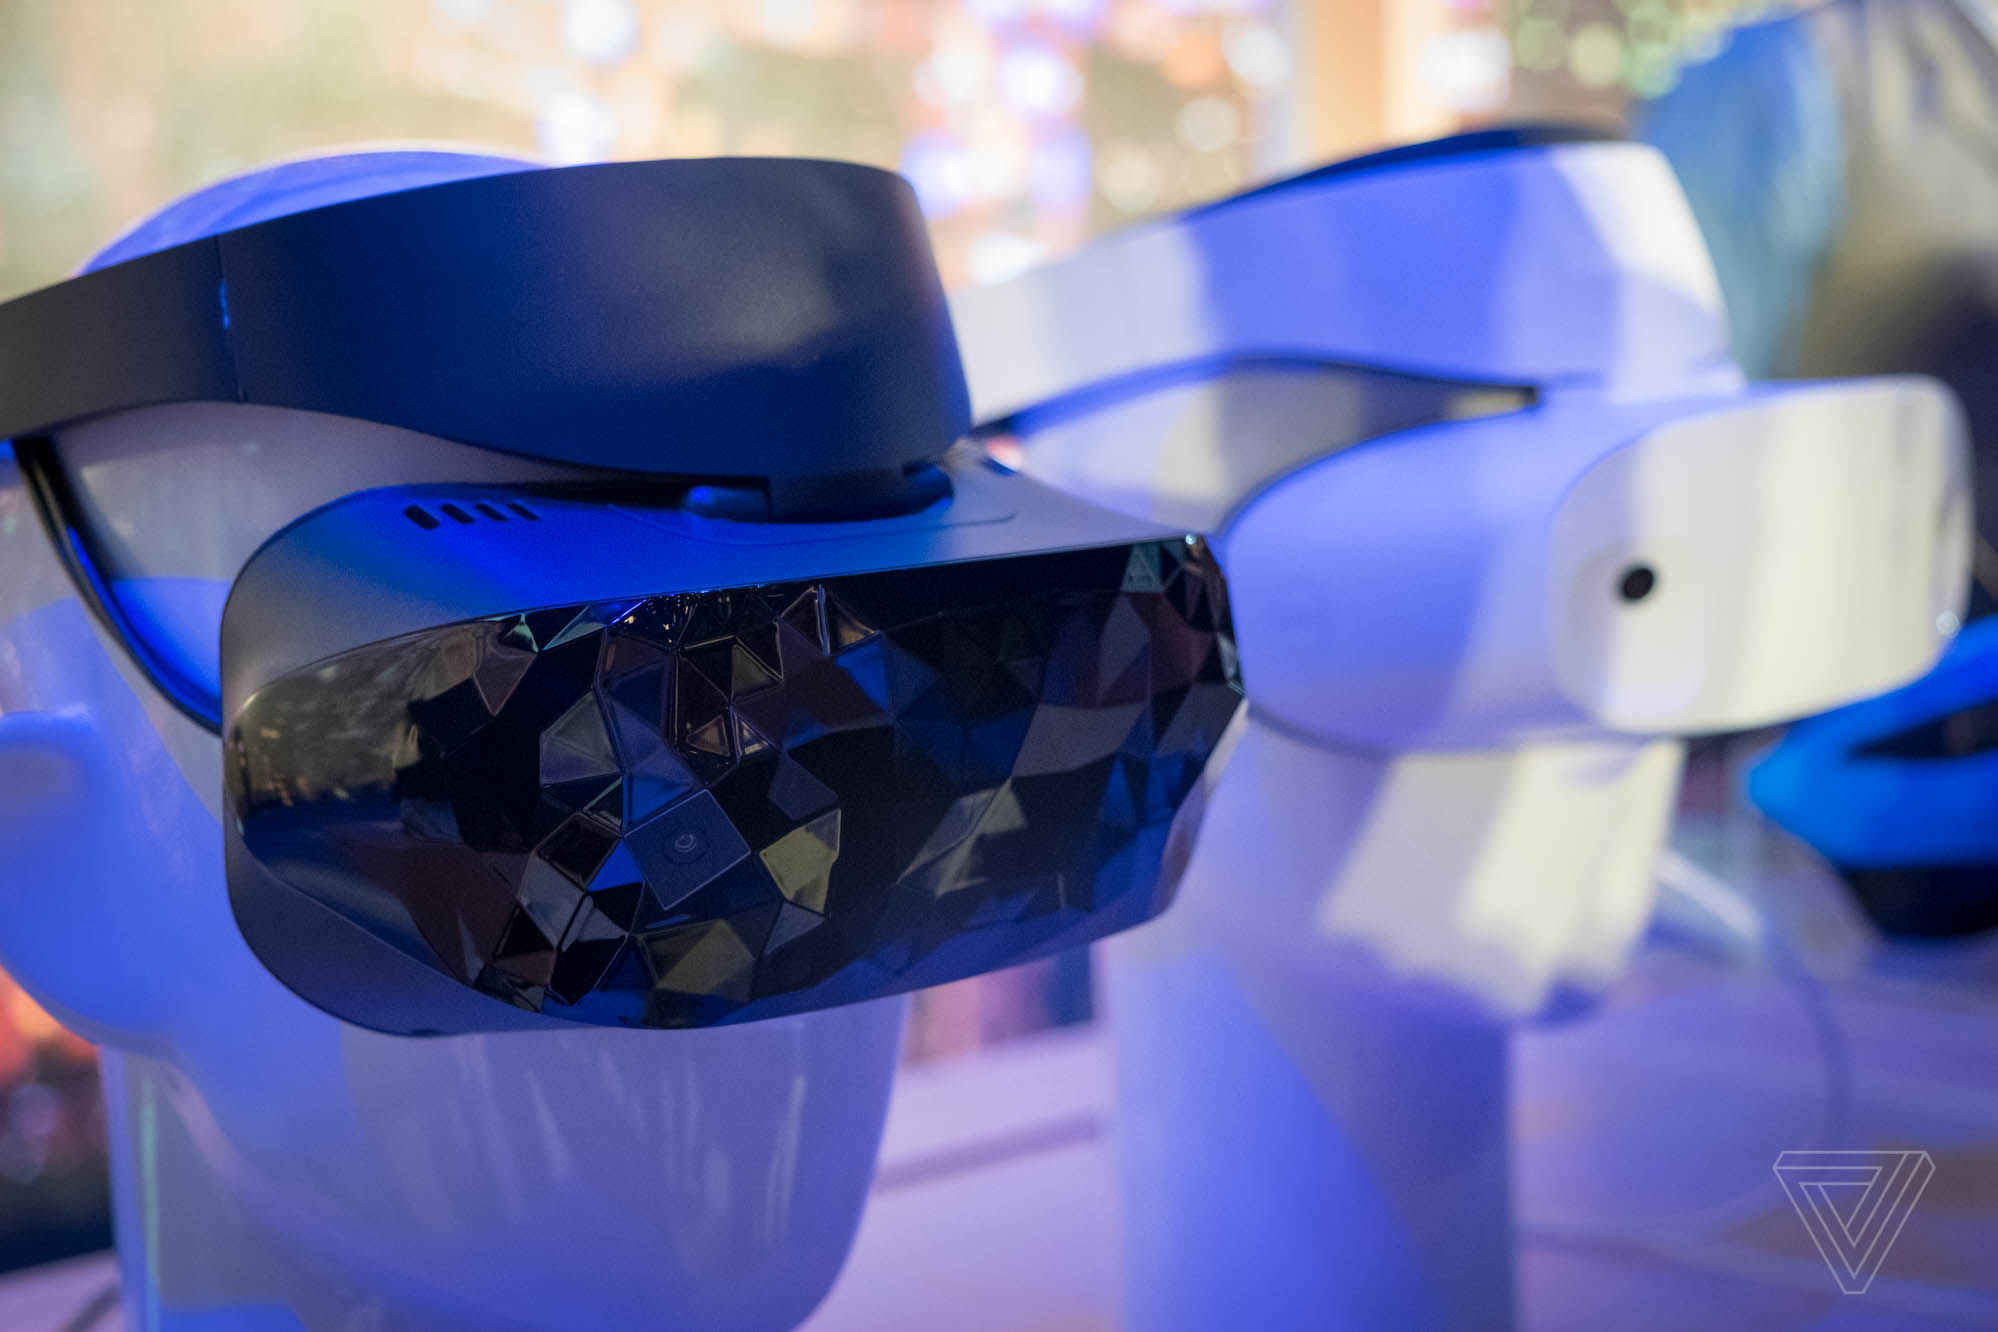 Microsoft showcases Windows Mixed Reality headsets